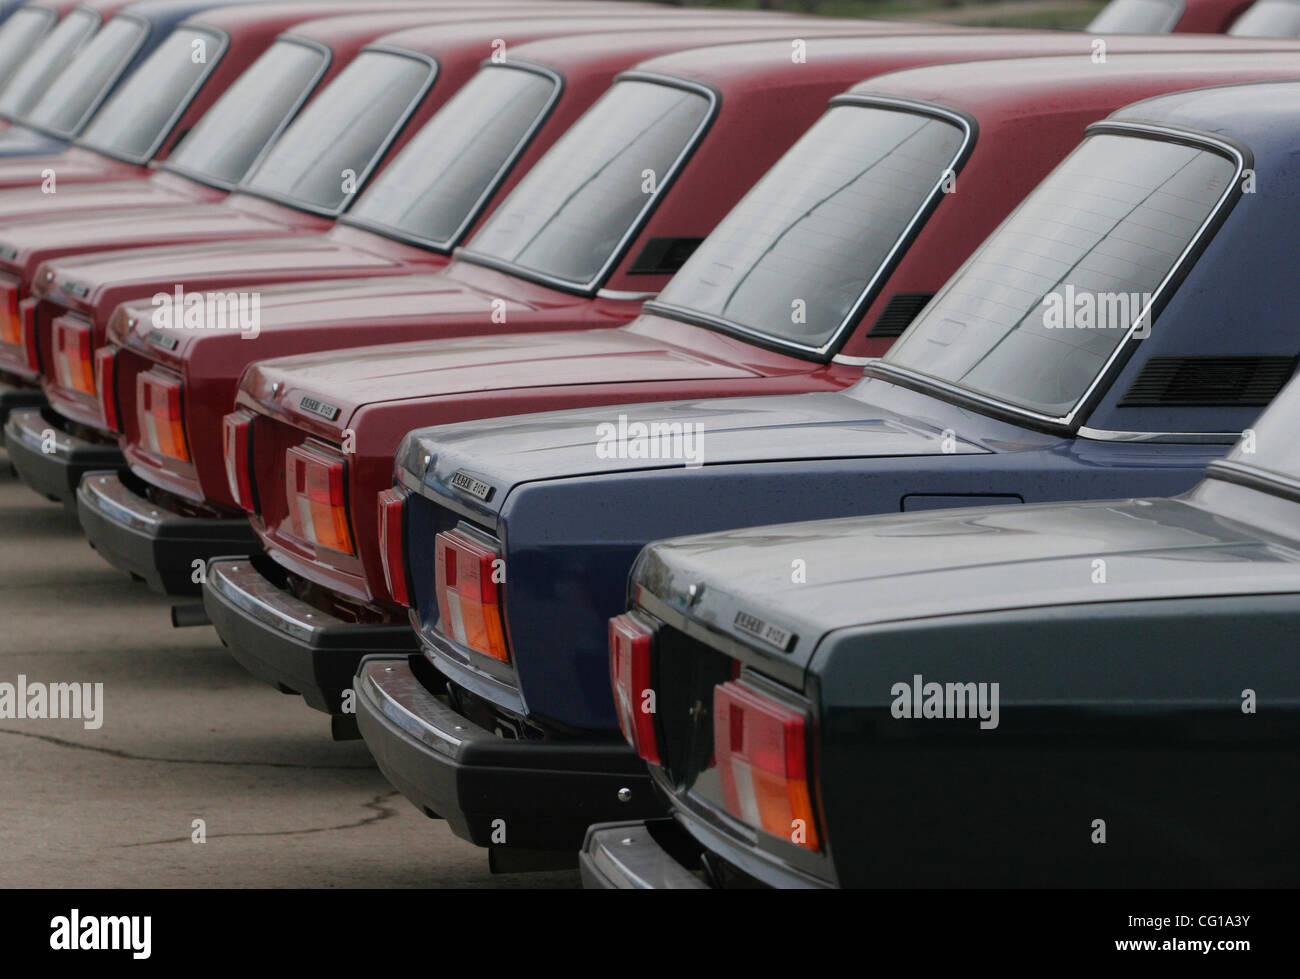 Brand new russian cars Lada ready for sale. Lada (Zhiguli) is an old ...